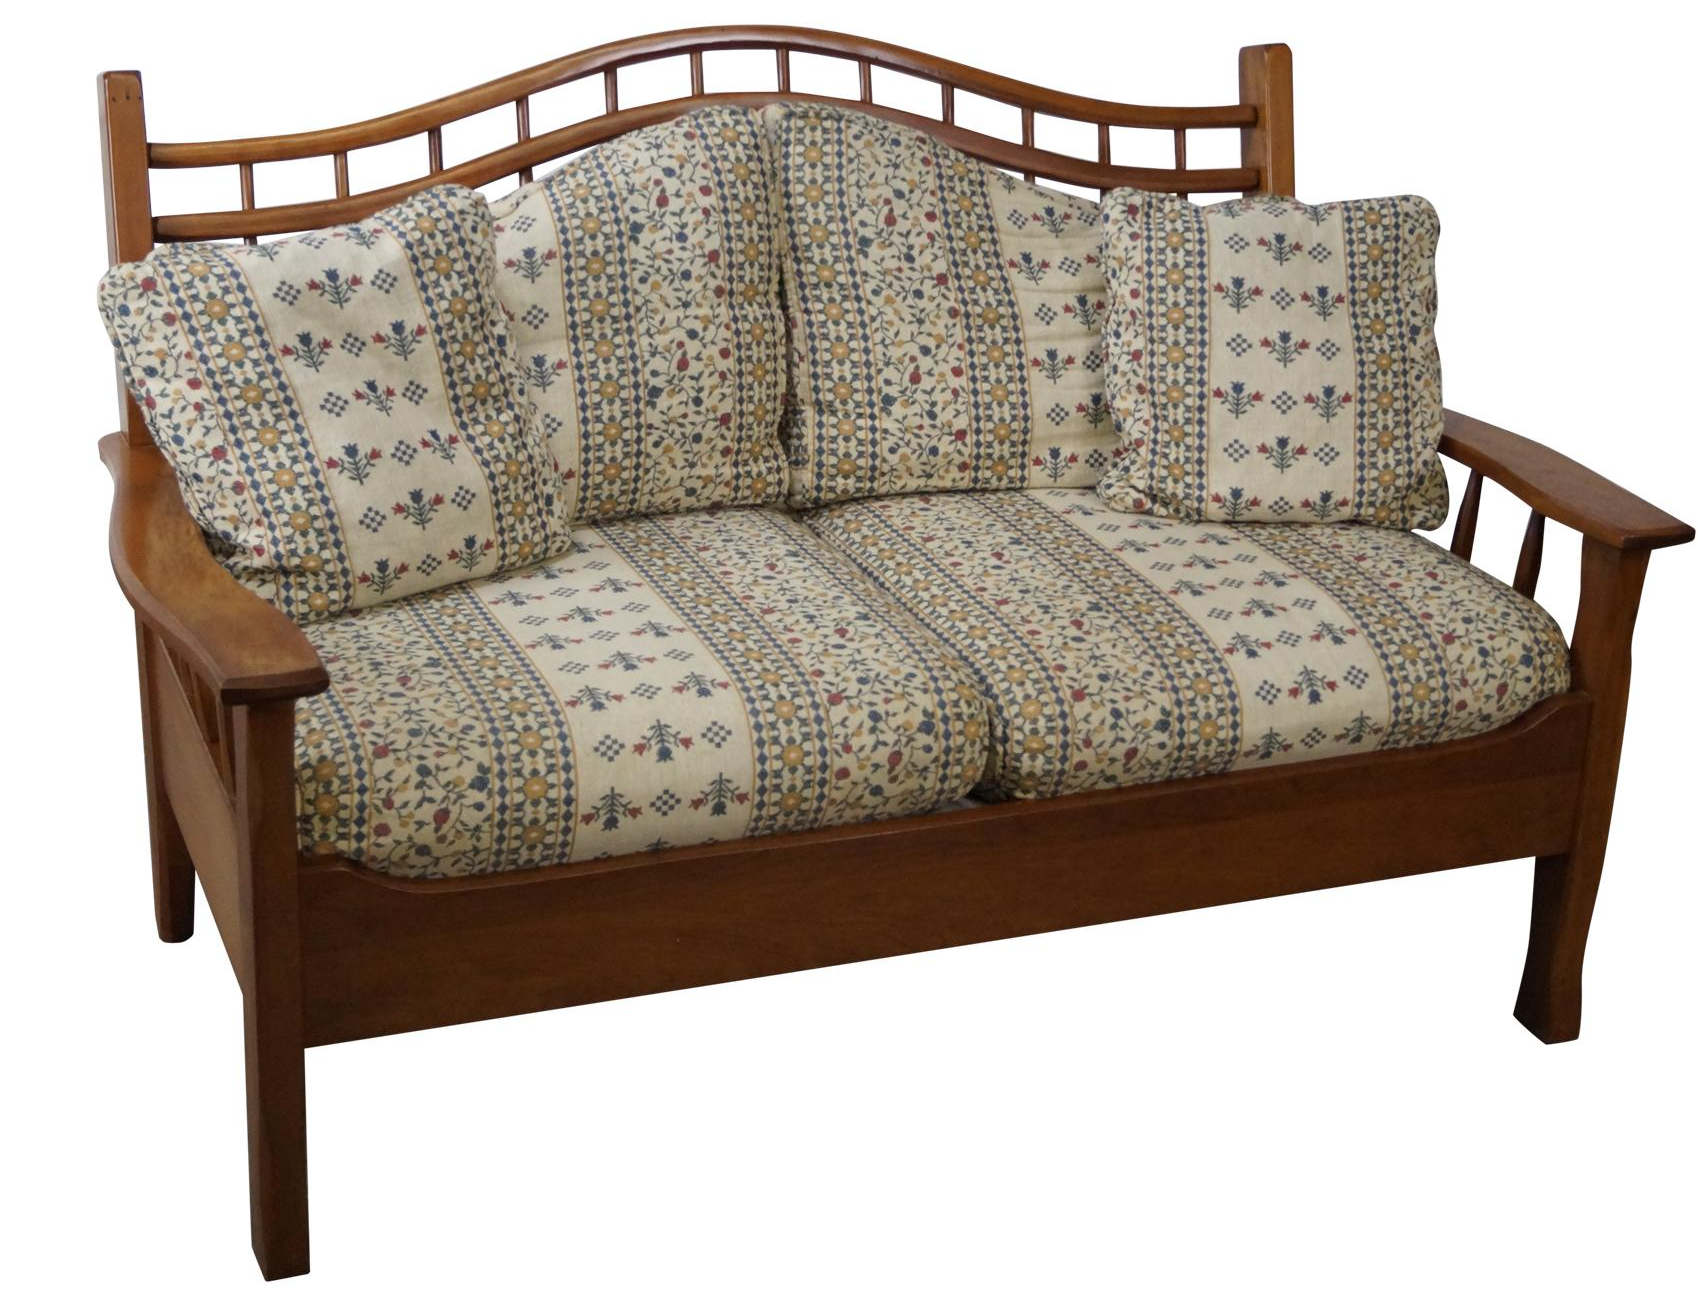 Country furniture sofa - Image Of Hunt Country Furniture Windsor Settee